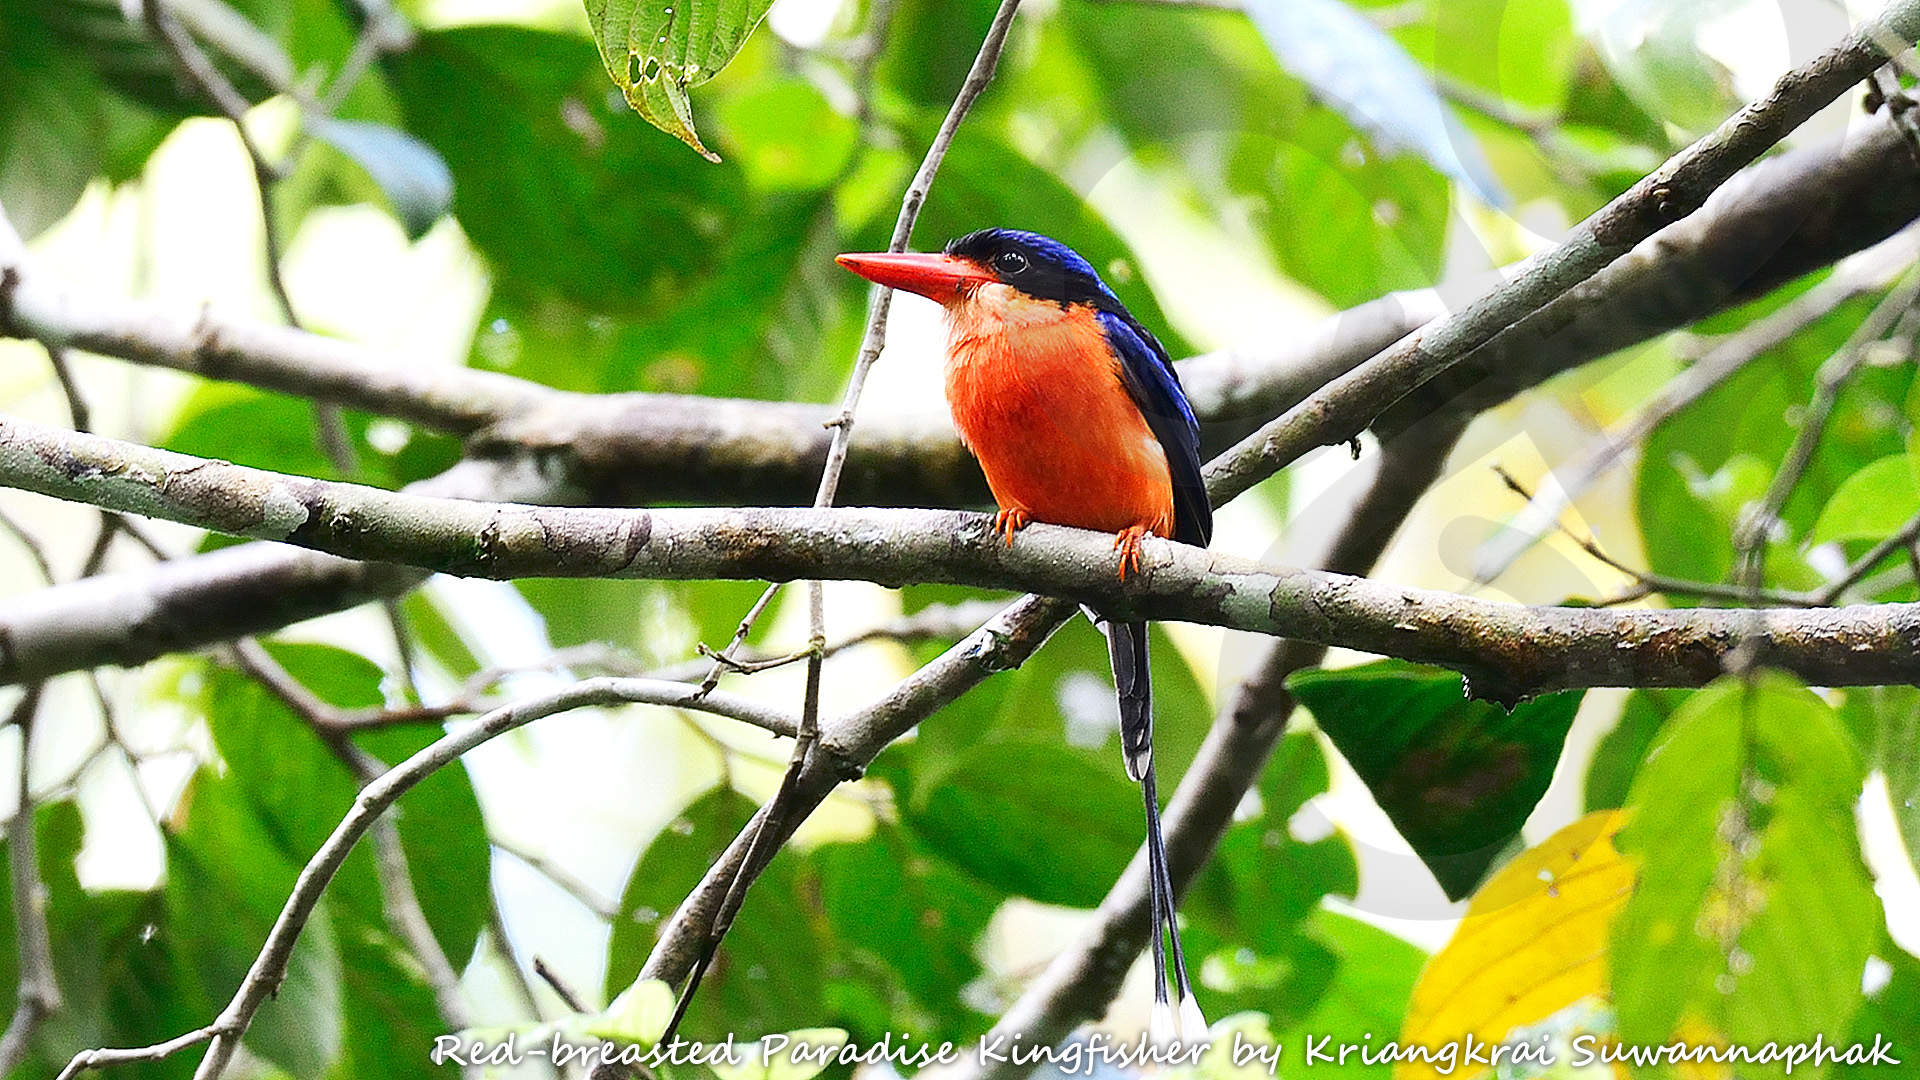 The restricted-range Red-breasted Paradise Kingfisher Tanysiptera nympha is mysteriously absent from many seemingly suitable forested localities within the Bird's Head or Vogelkop lowlands, and could be the highlight of a birding excursion around Sorong. Copyright © Kriangkrai Suwannaphak